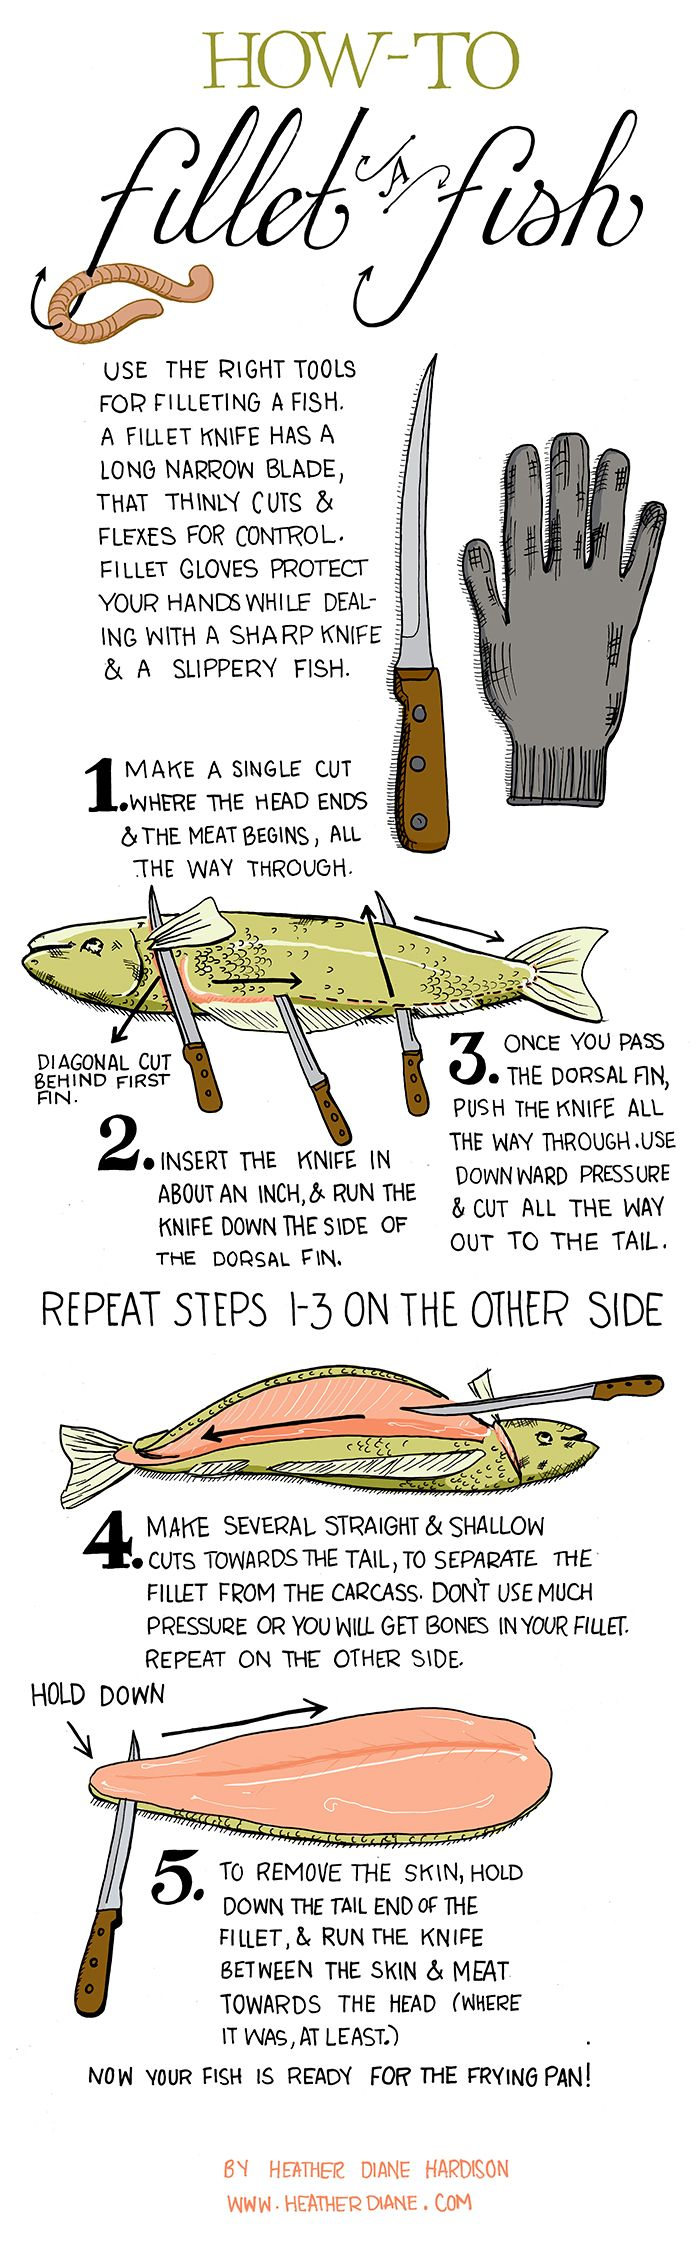 Do you fillet? Learn how to fillet a fish with this handy guide. Don't forget to practice safe handling in the kitchen! #ToTTfulTips